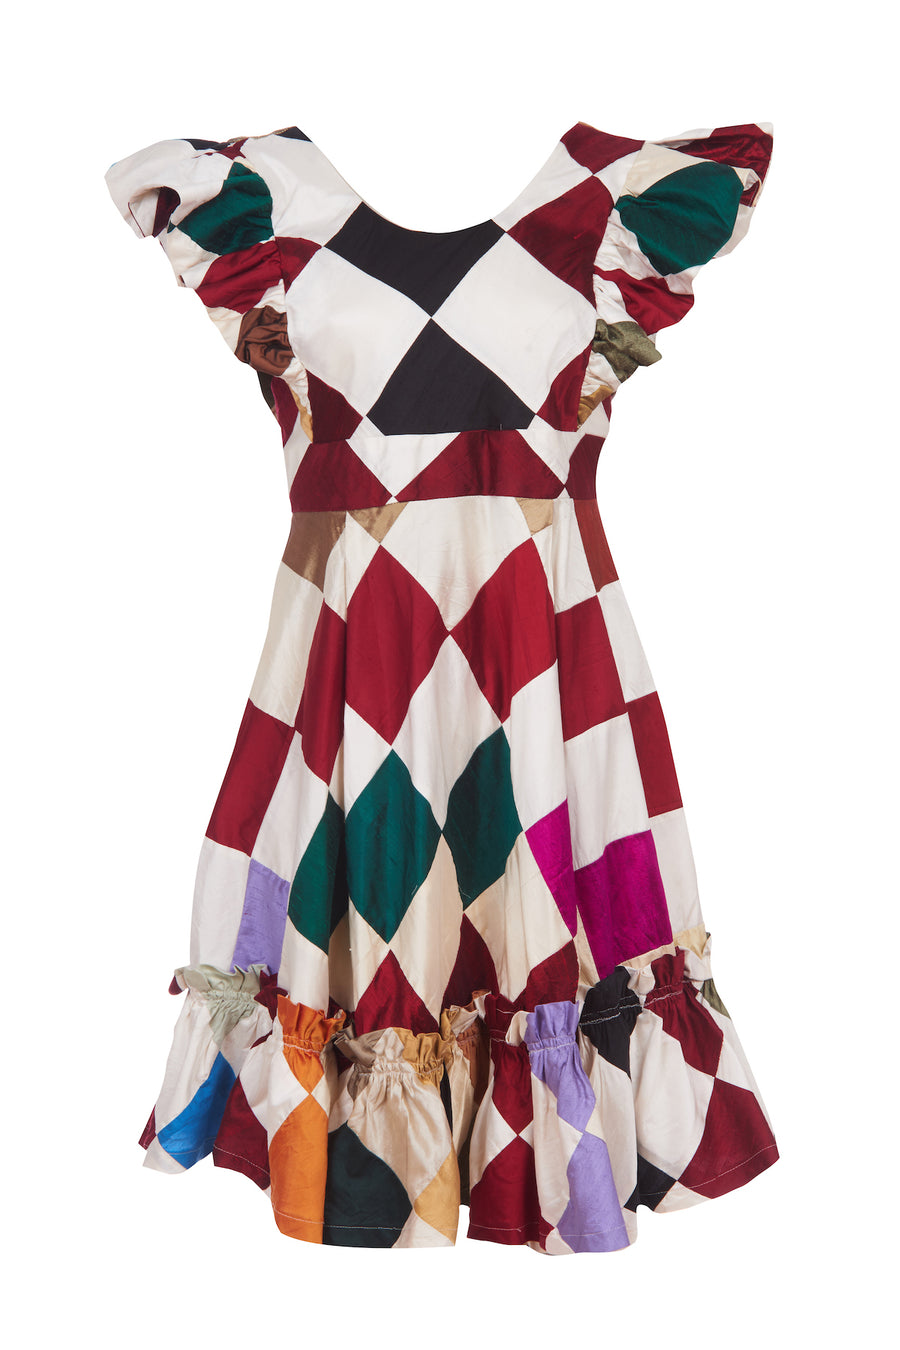 HARLEQUIN QUINOA DRESS